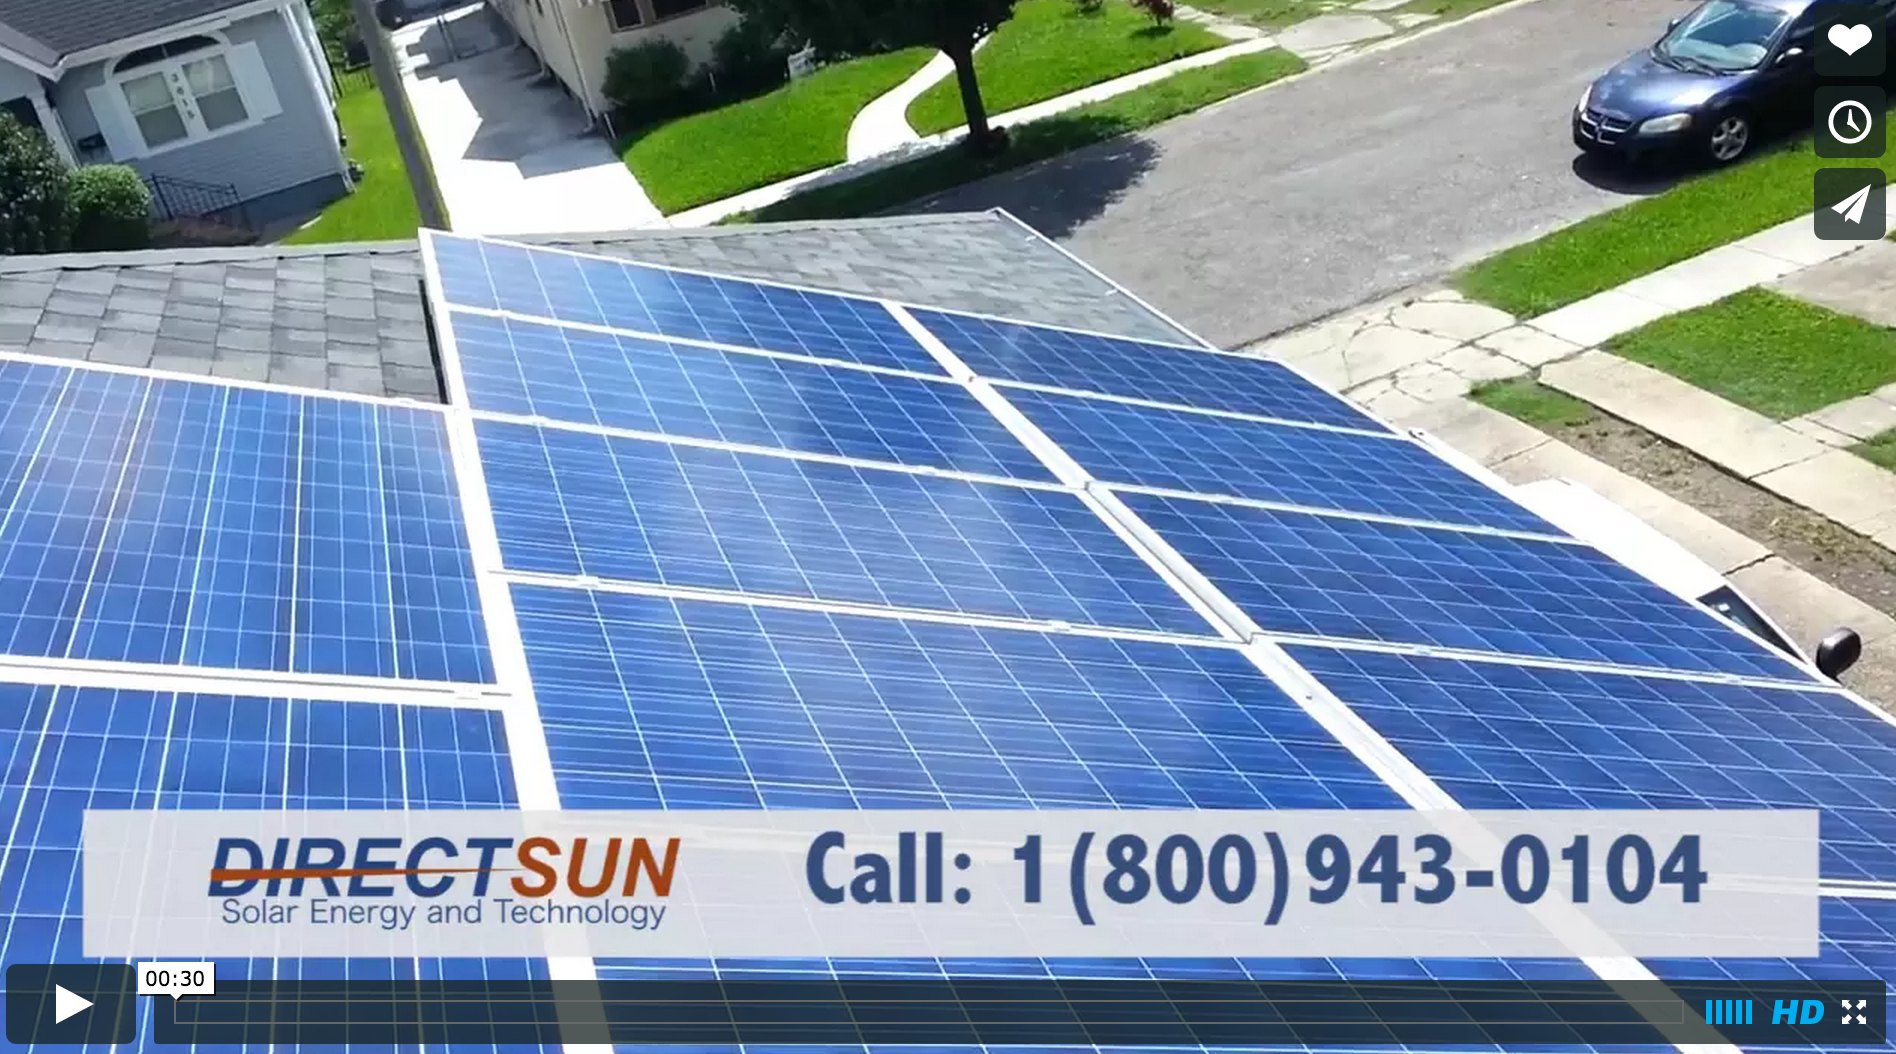 DirectSun Solar Energy and Technology (45KW 30sec)